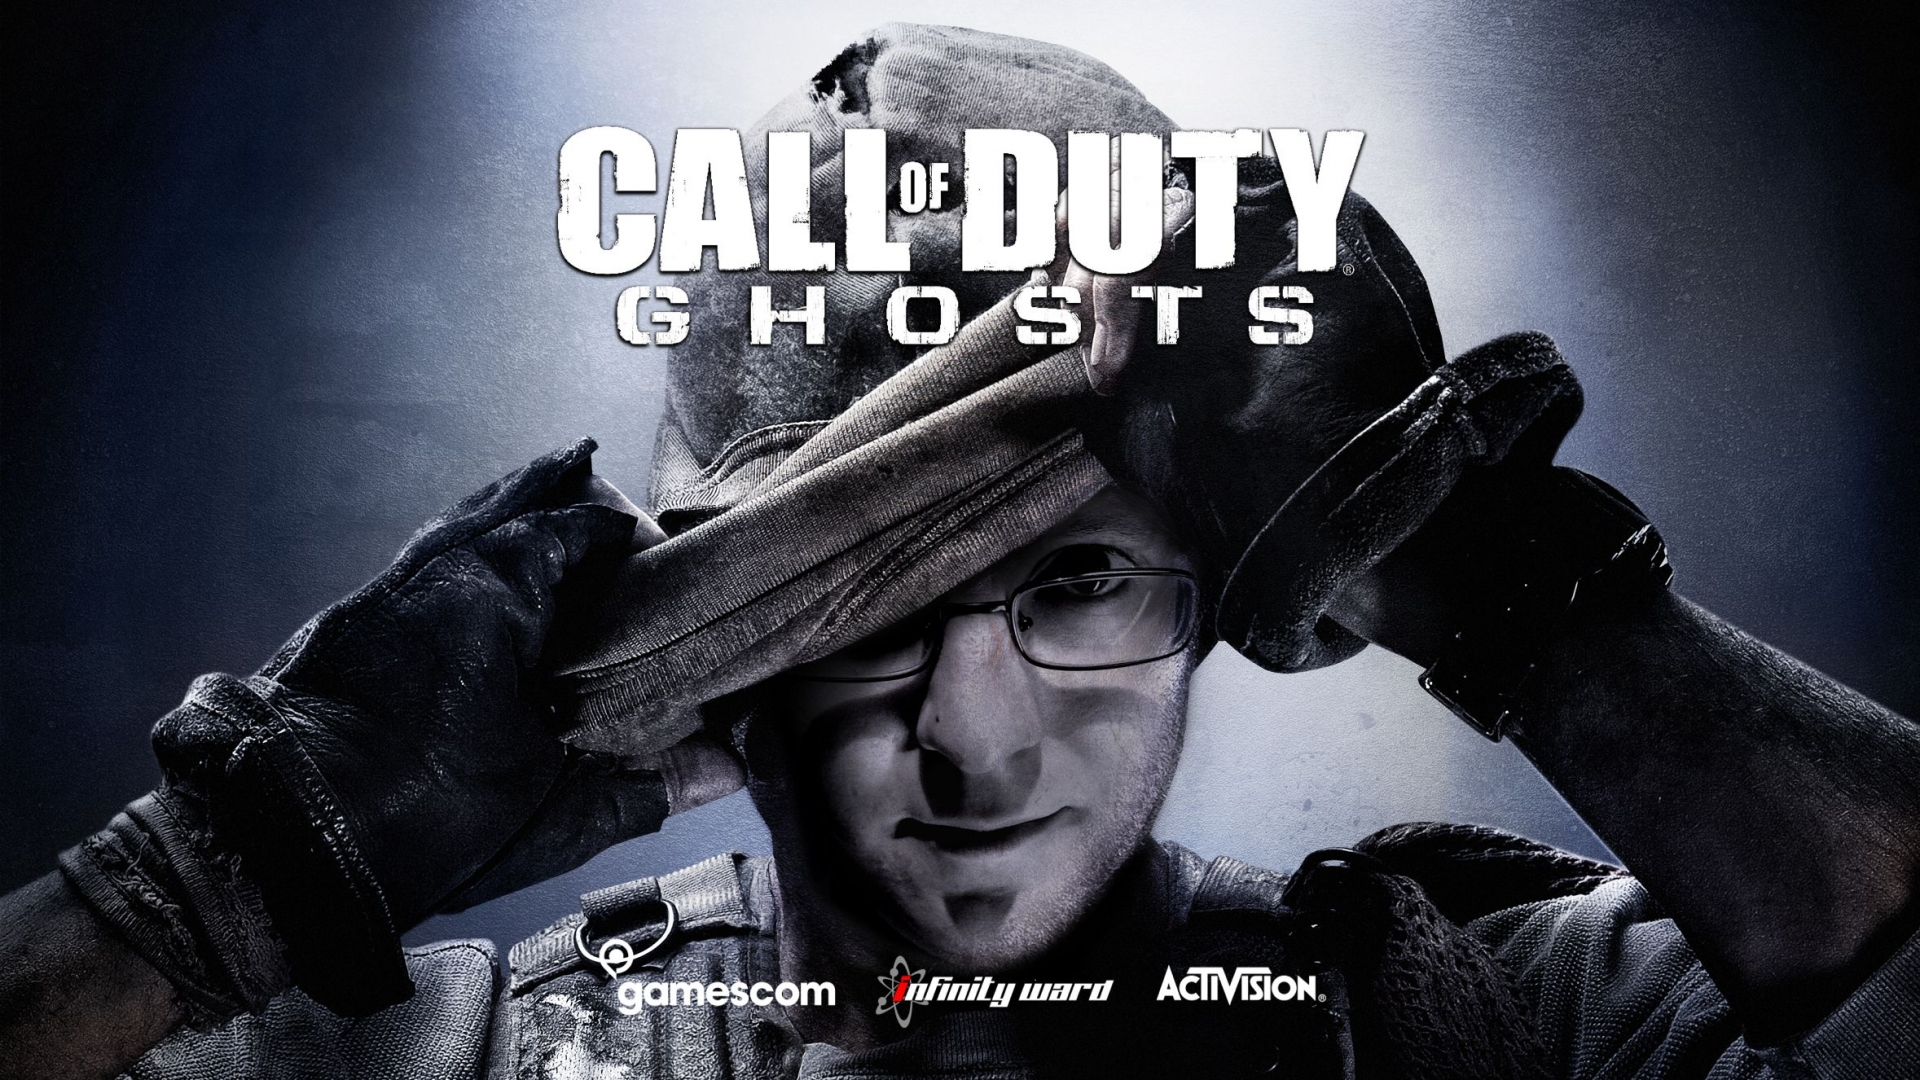 Ice devilz neuigkeiten multigaming since 2oo8 cod ghost mal anders1434 sciox Image collections